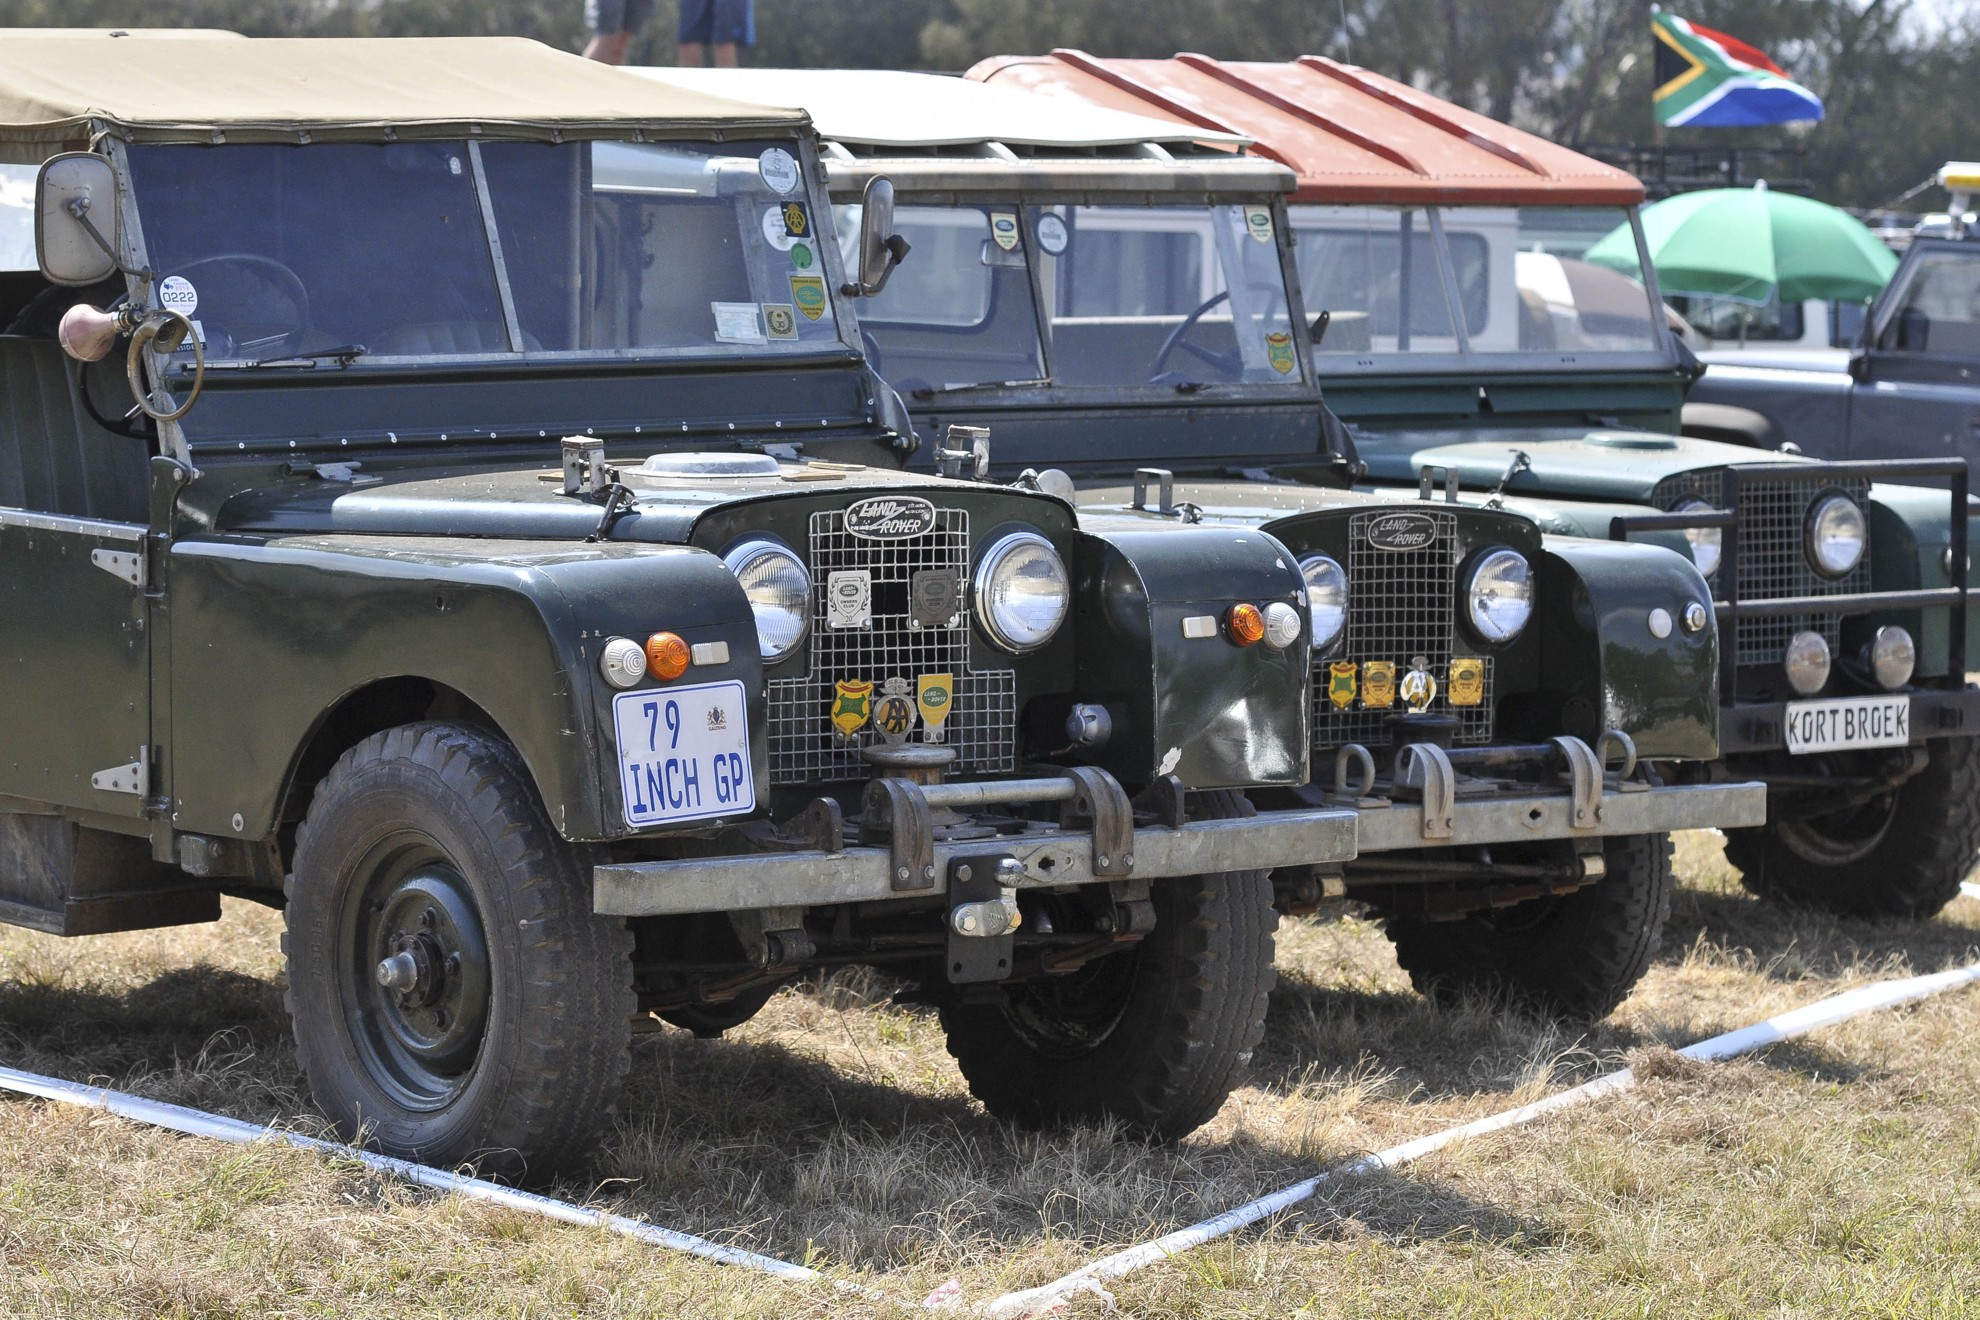 Land Rover Second Landy Festival in South Africa